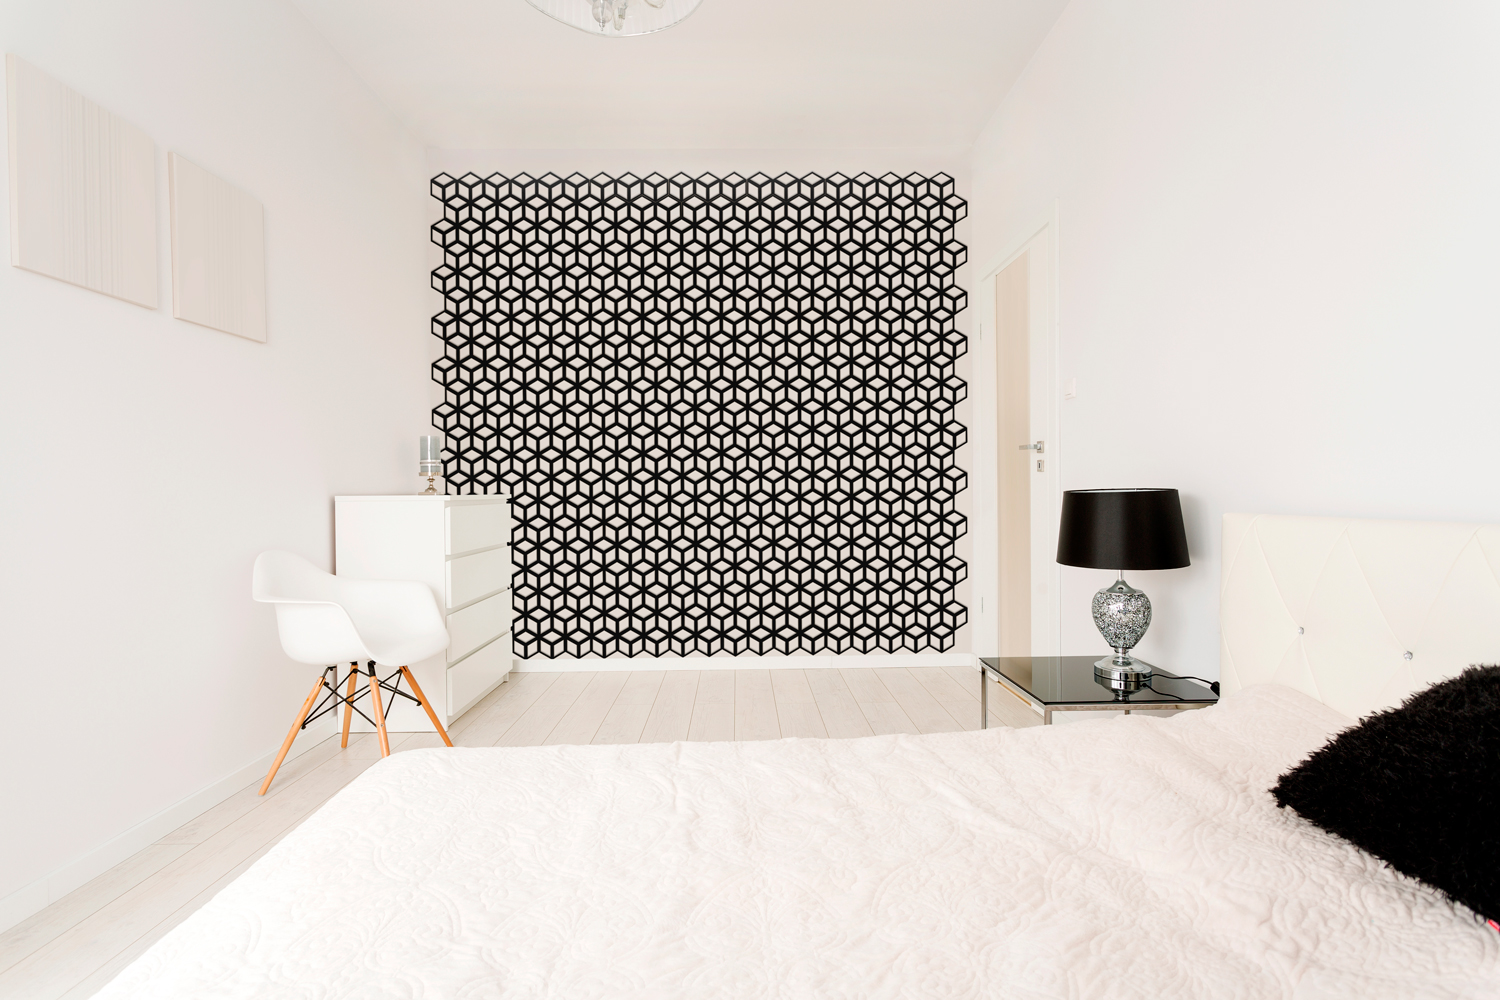 Muratto Pattern Tiles - Motif - Cinetic